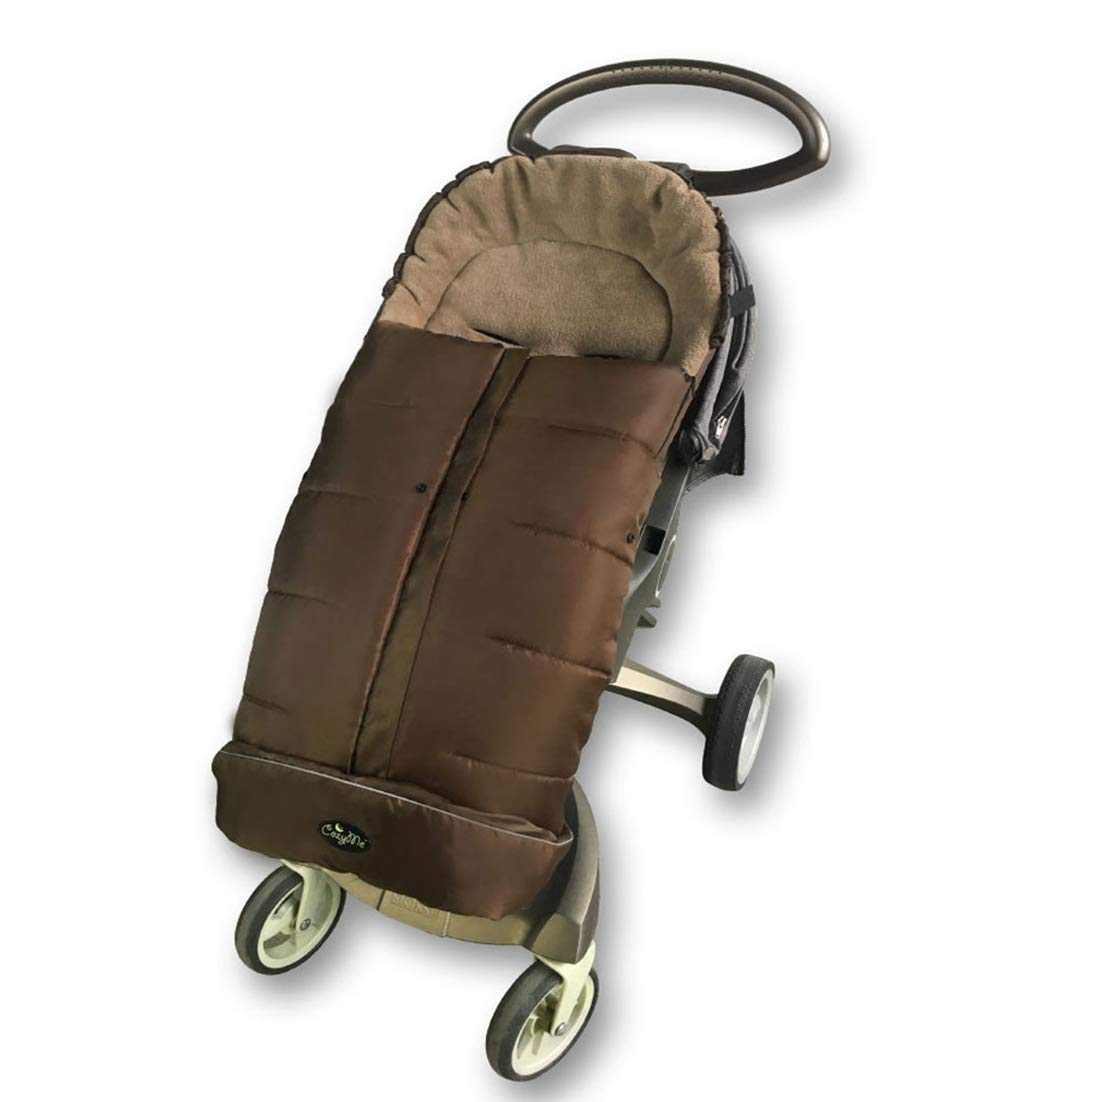 Warm Cuddly Weather Resistant Baby Stroller Footmuff Fits Most of Pushchair and Joggers,Central Open,Height Adjustable,100% Safe CPC Tested Toddler Stroller Bunting Bag-Coffee